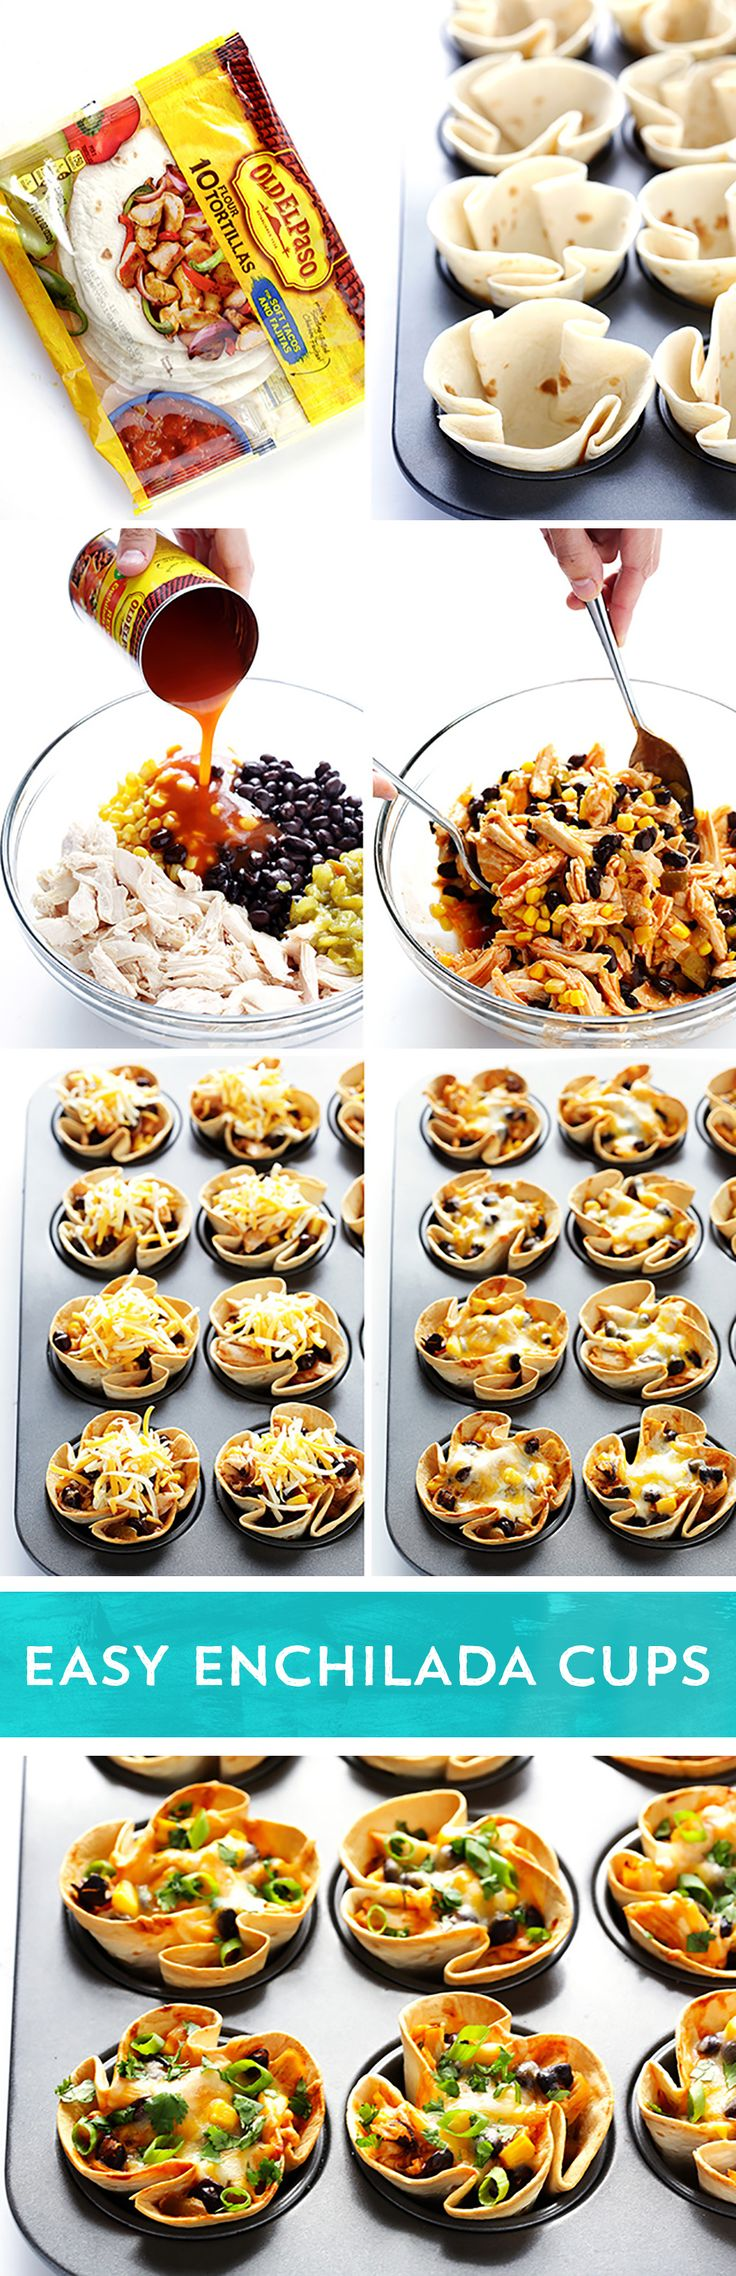 Try something new for taco night! These Easy Enchilada Cups from @gimmesomeoven are the perfect twist on traditional tacos! Old El Paso Tortillas™ make easy mini cups to hold all of your favorite enchilada flavors, in an easy-to-eat snack! They're ready to eat in just 30 minutes - and they're the perfect party appetizer or dinner idea!